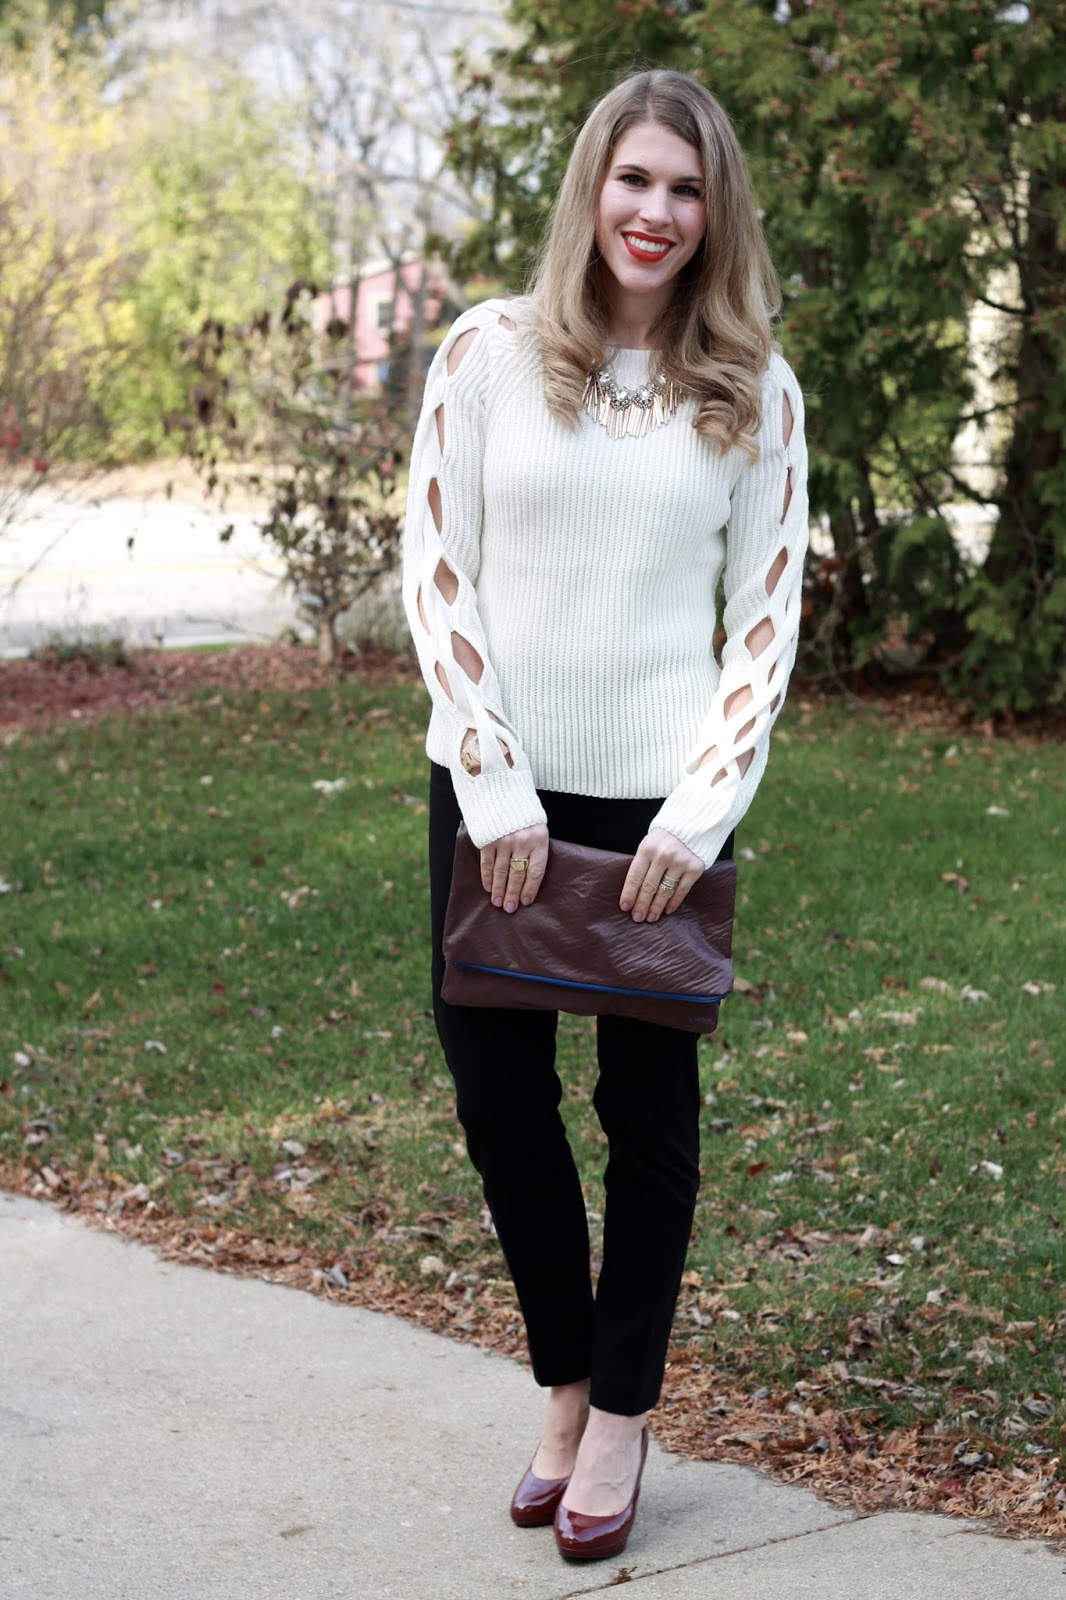 White crisscross sweater, Slimstation black ankle pants, burgundy clutch, burgundy heels